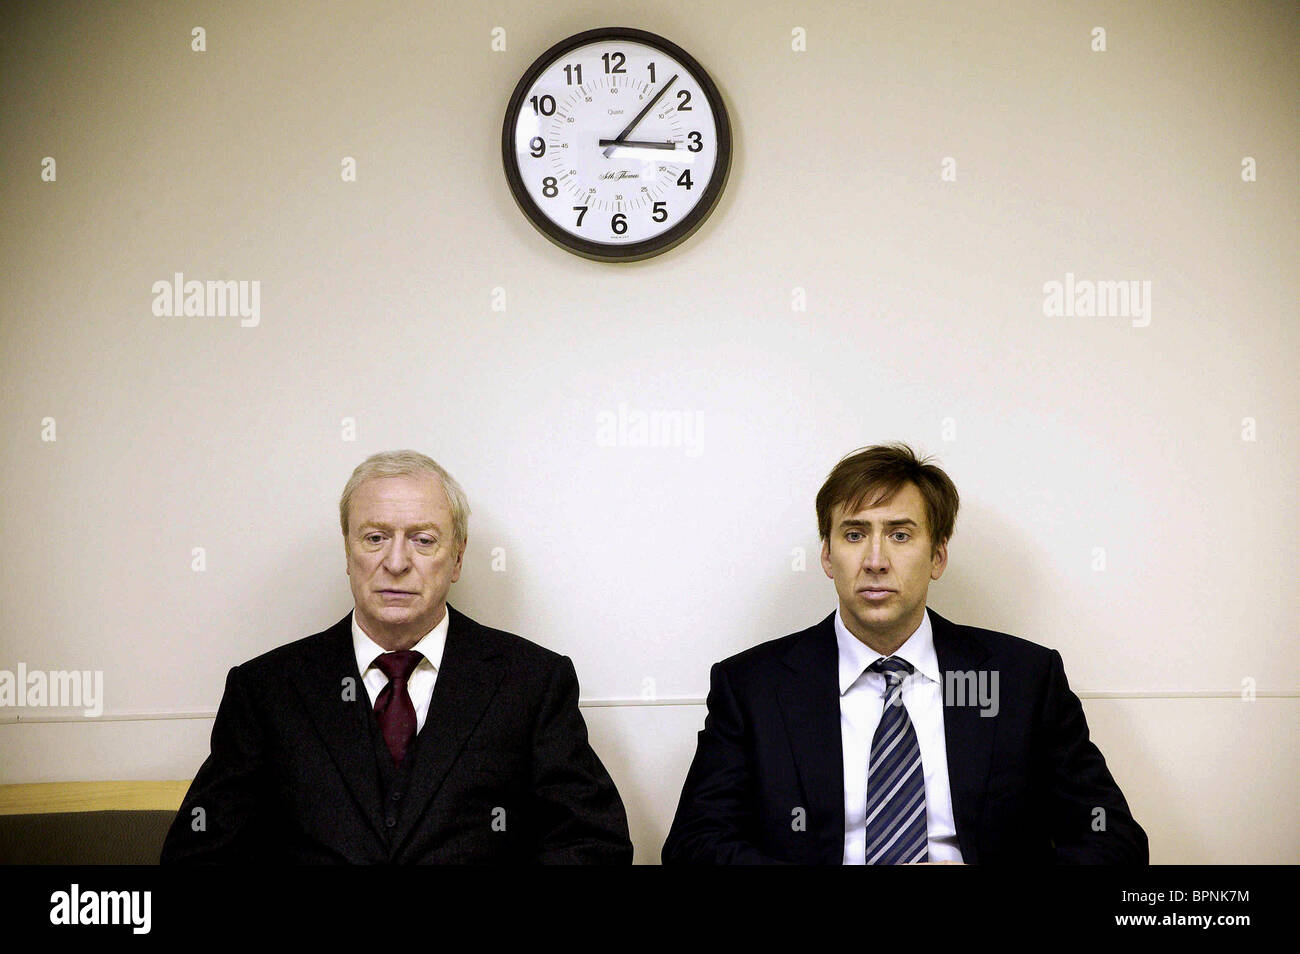 MICHAEL CAINE & NICOLAS CAGE THE WEATHER MAN 2005 Stock